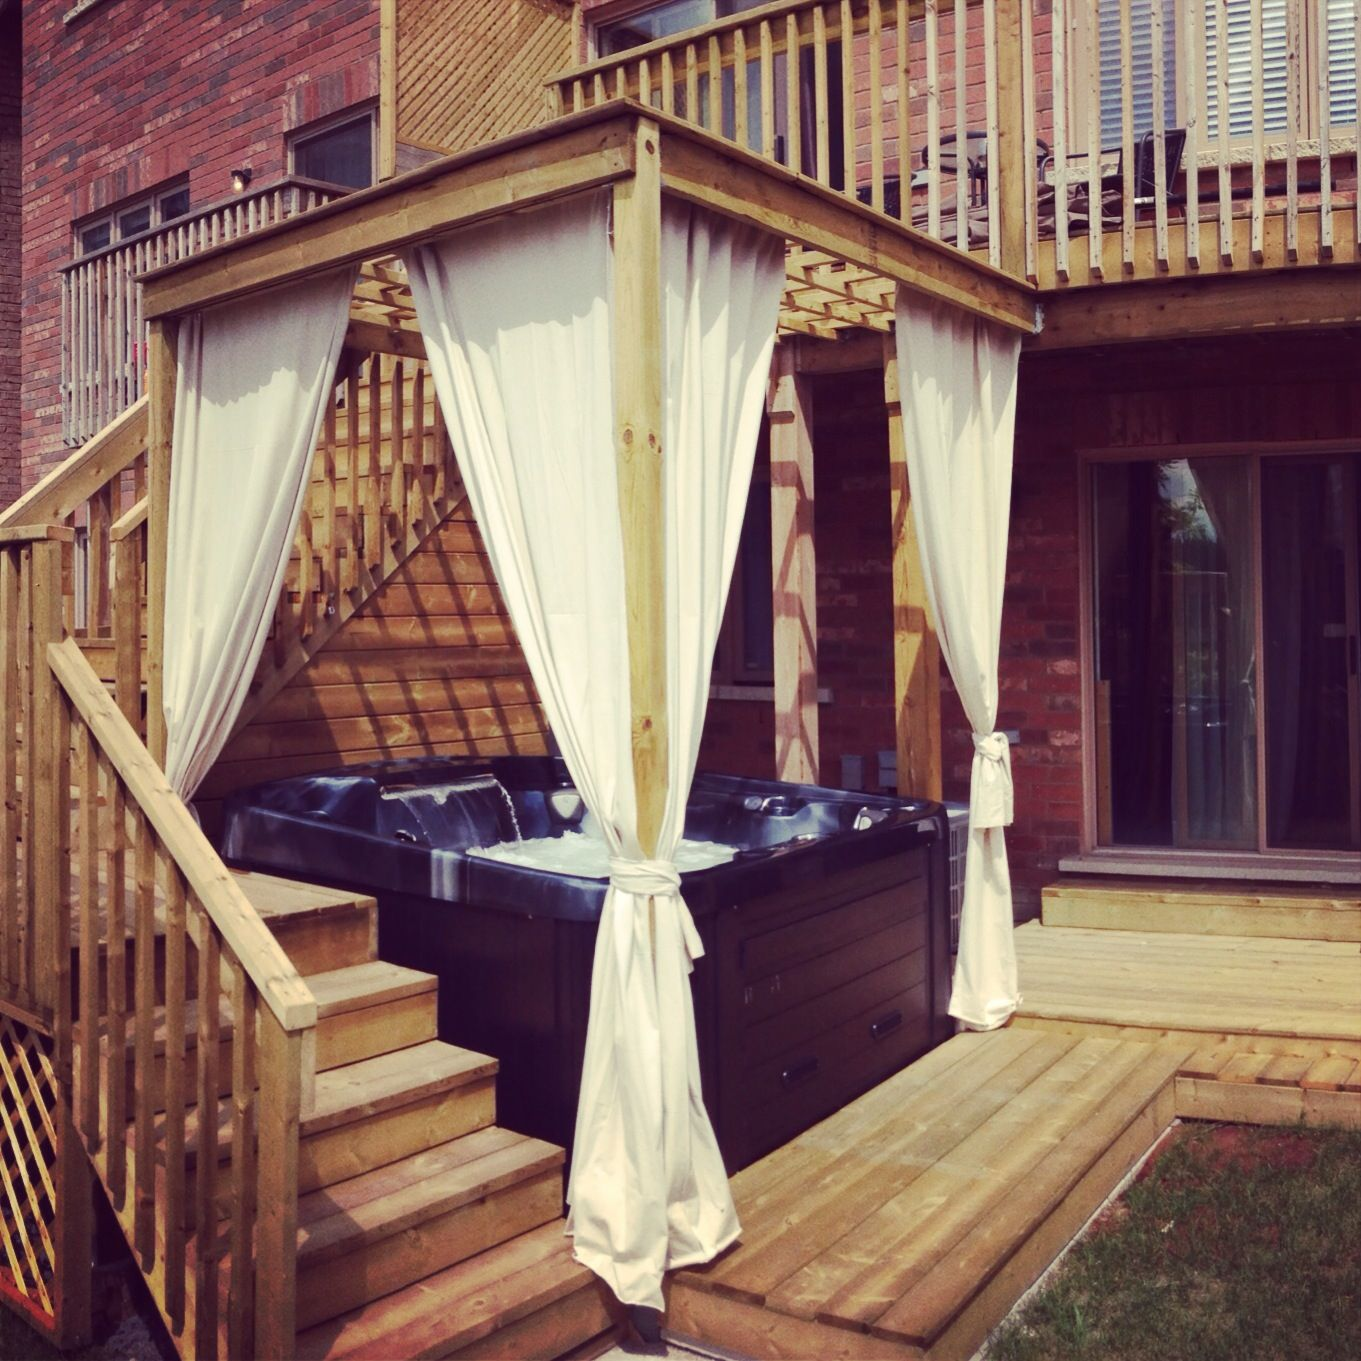 Diy Cabana Curtains Backyard Hot Tub Cabana Gazebo With Curtains Hot Tub Love